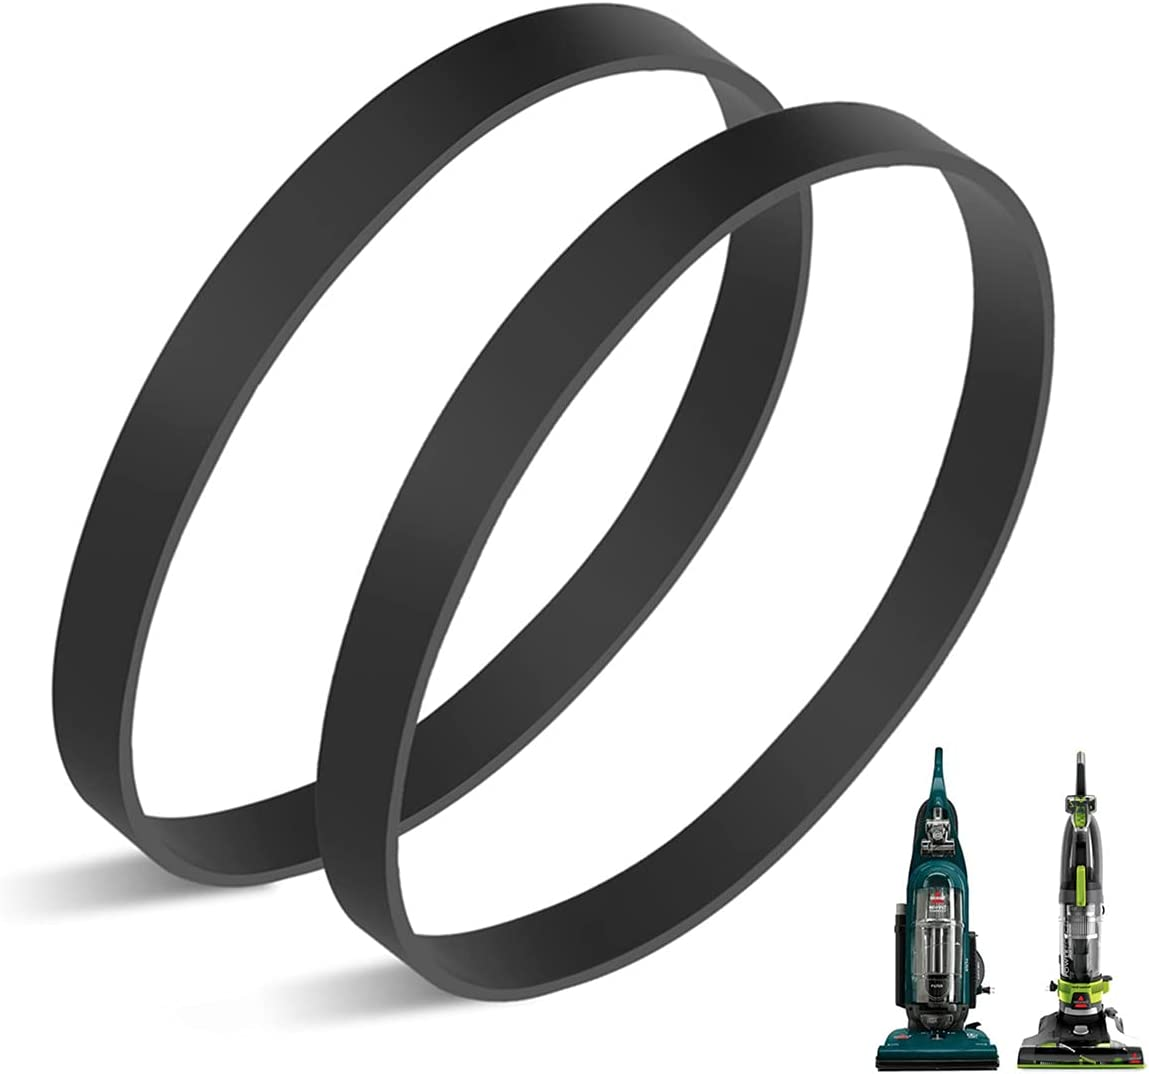 JEDELEOS Replacement Belts 3031120, 2031093  32074, Compatible